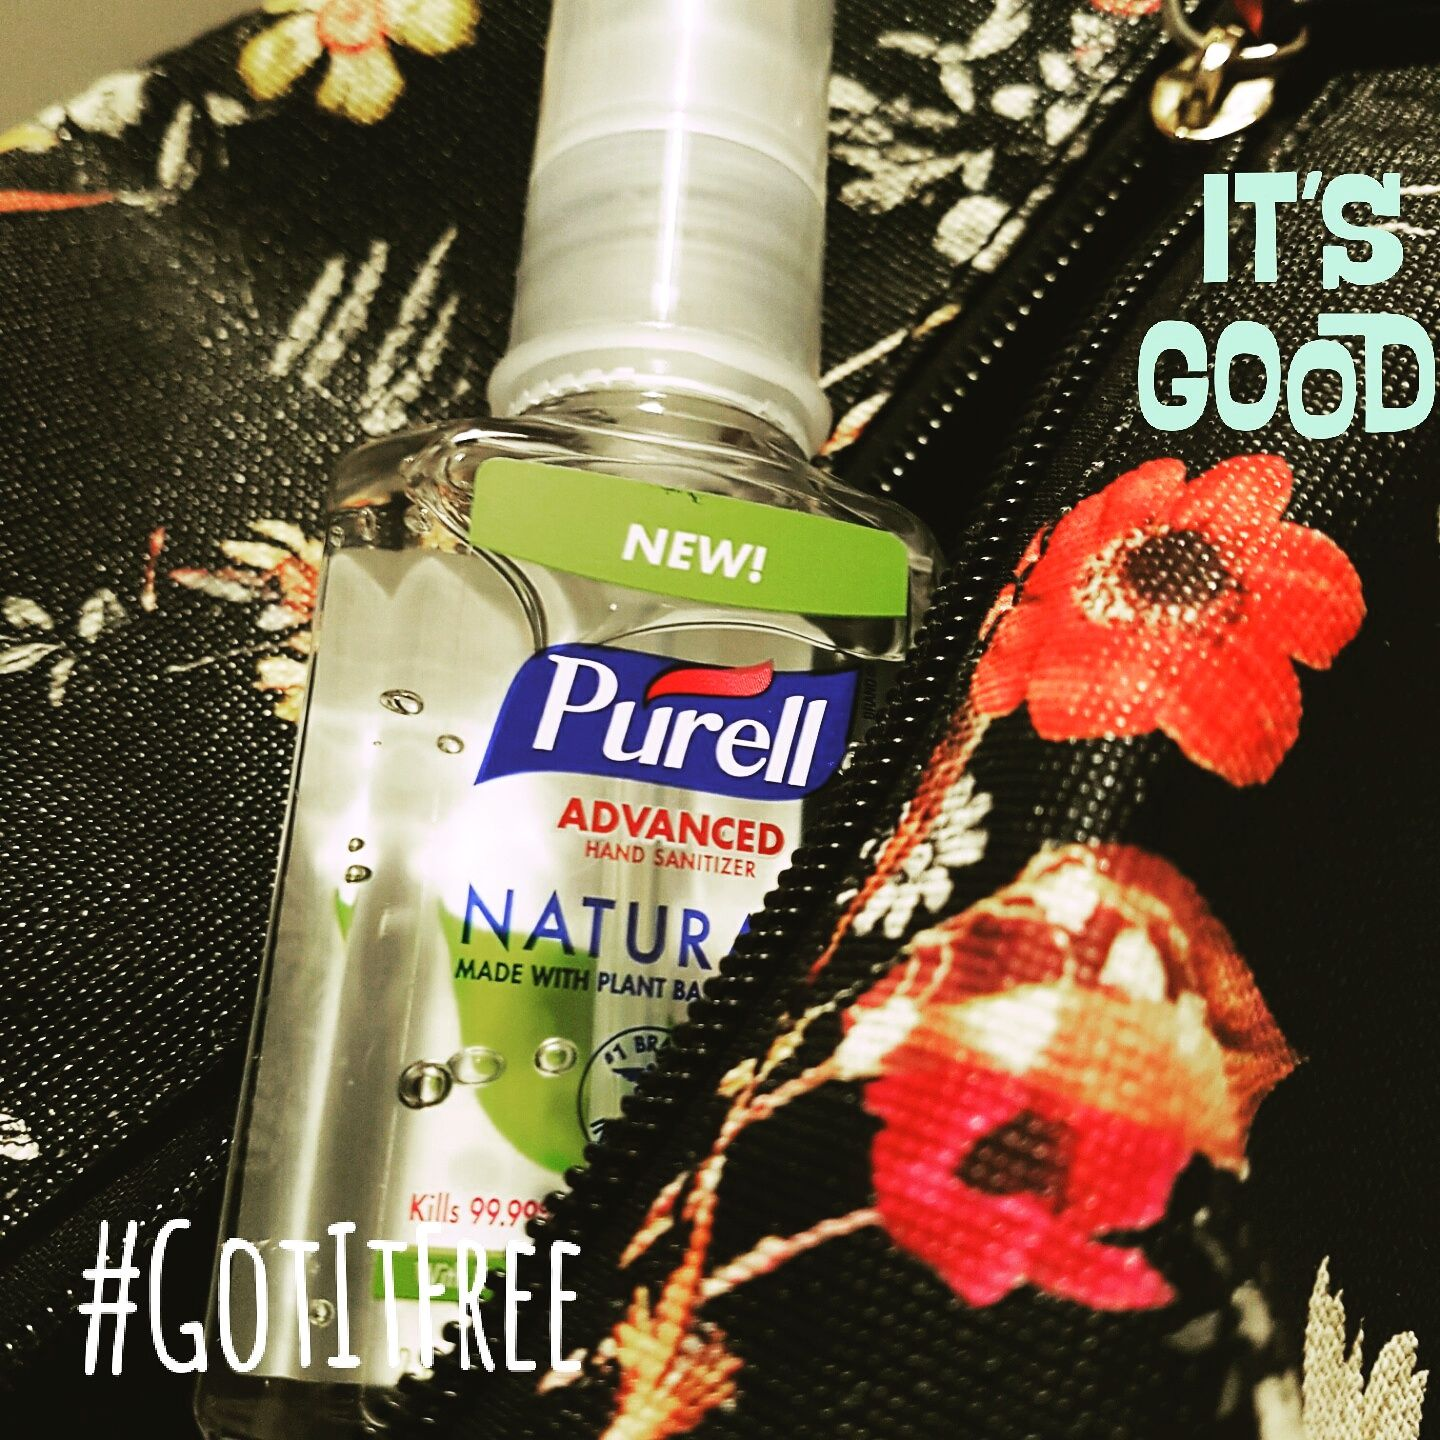 Purell Hand Sanitizer Got It For Free Thanks To Influencer For